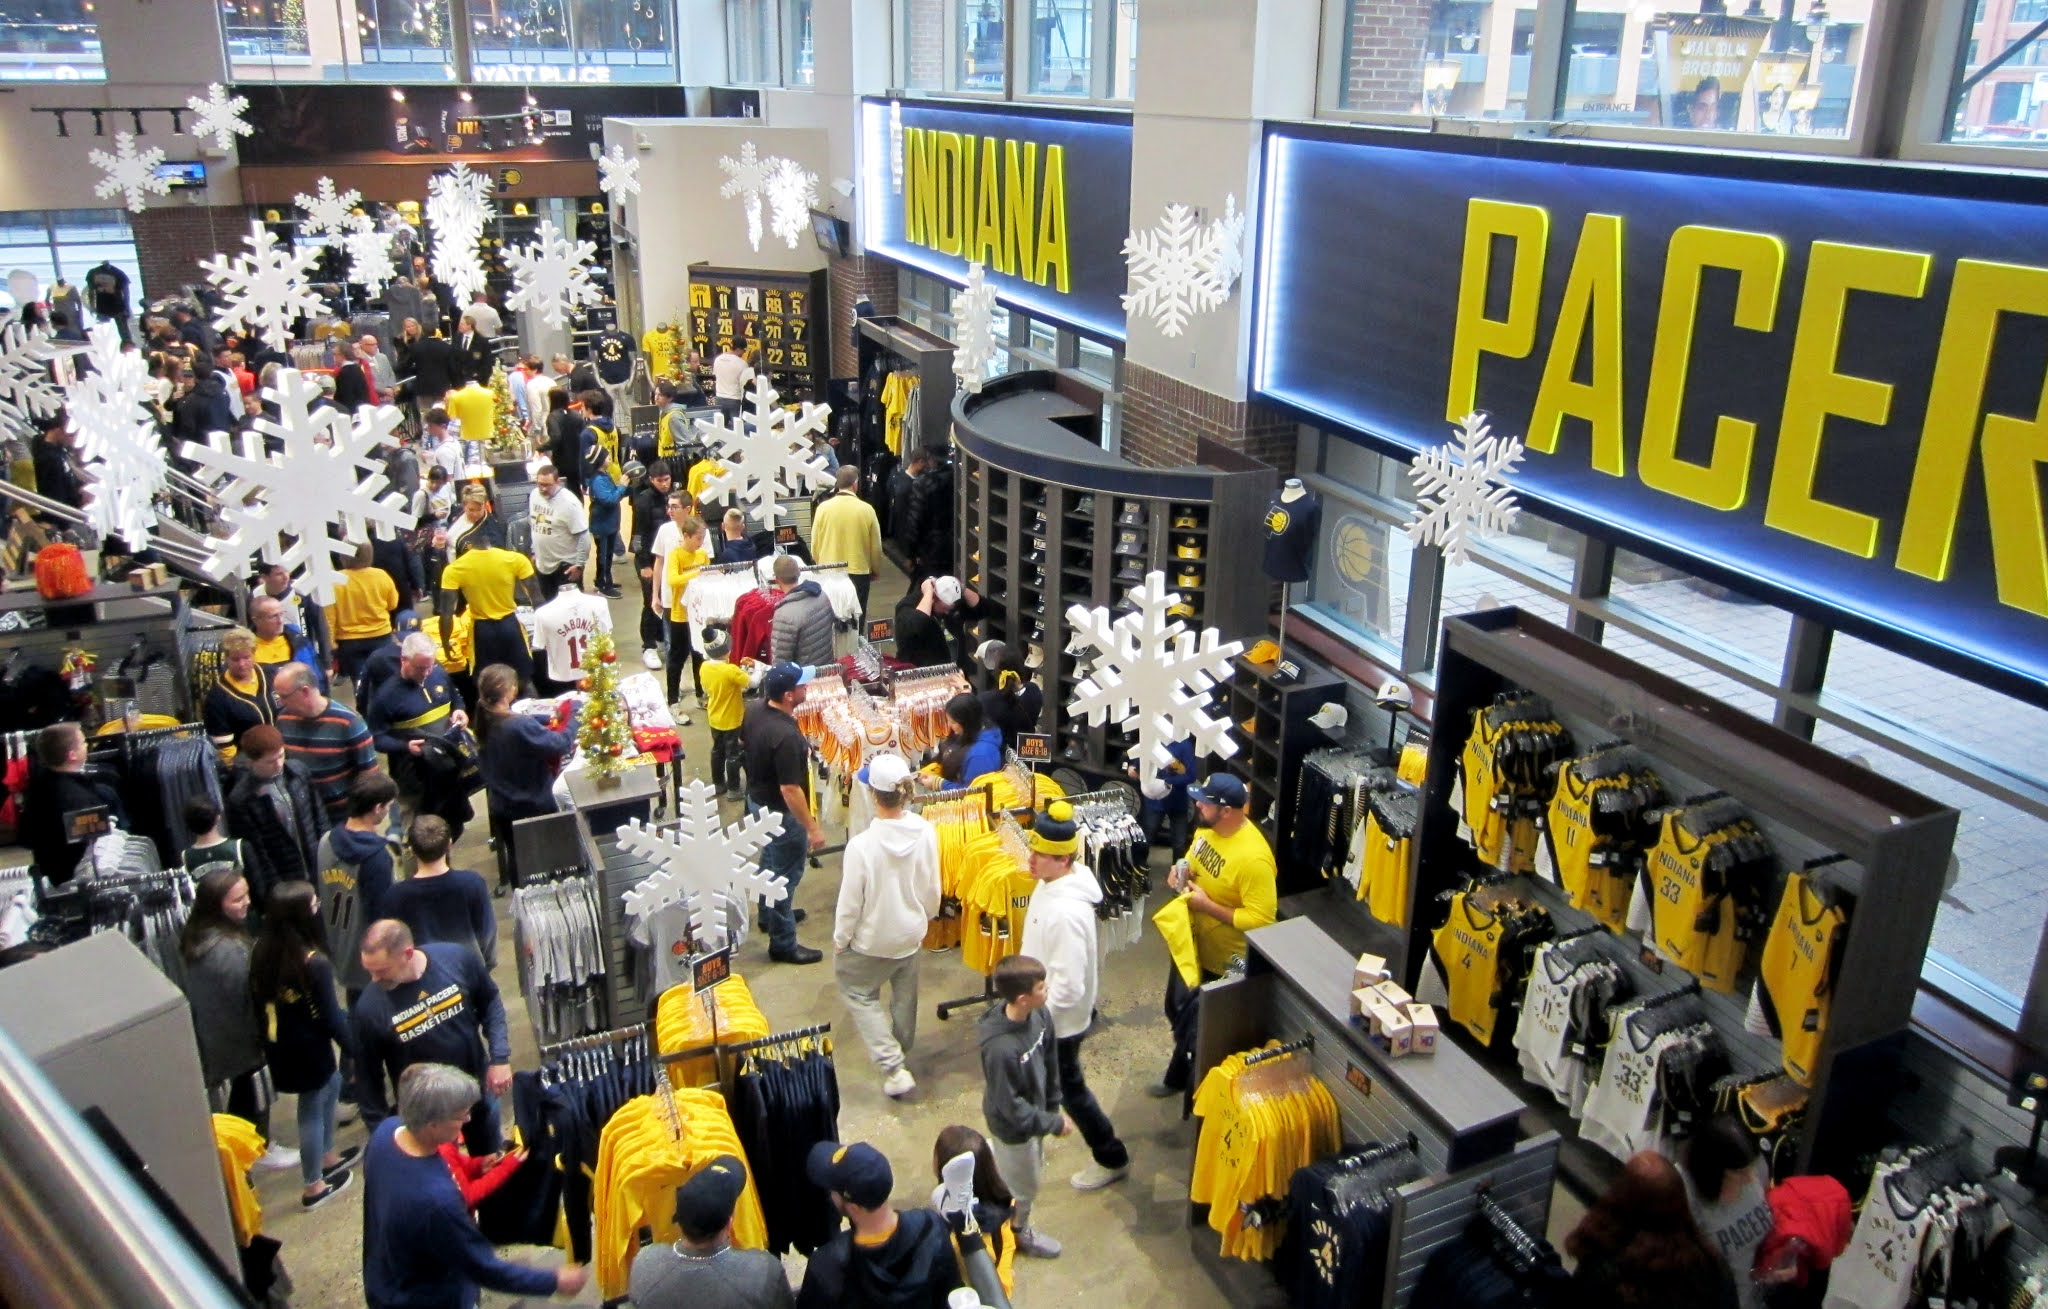 The Pacers Team Store at Bankers Life Fieldhouse